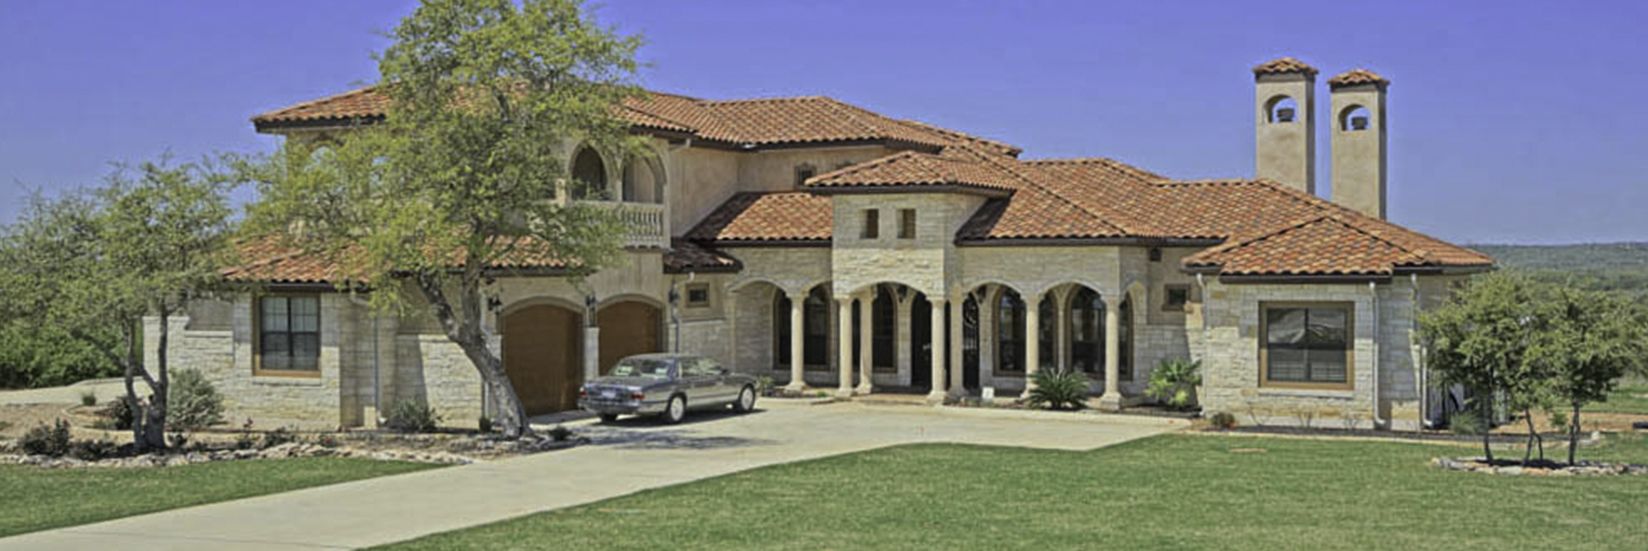 Custom home builder new braunfels san antonio hill for Custom house builder online